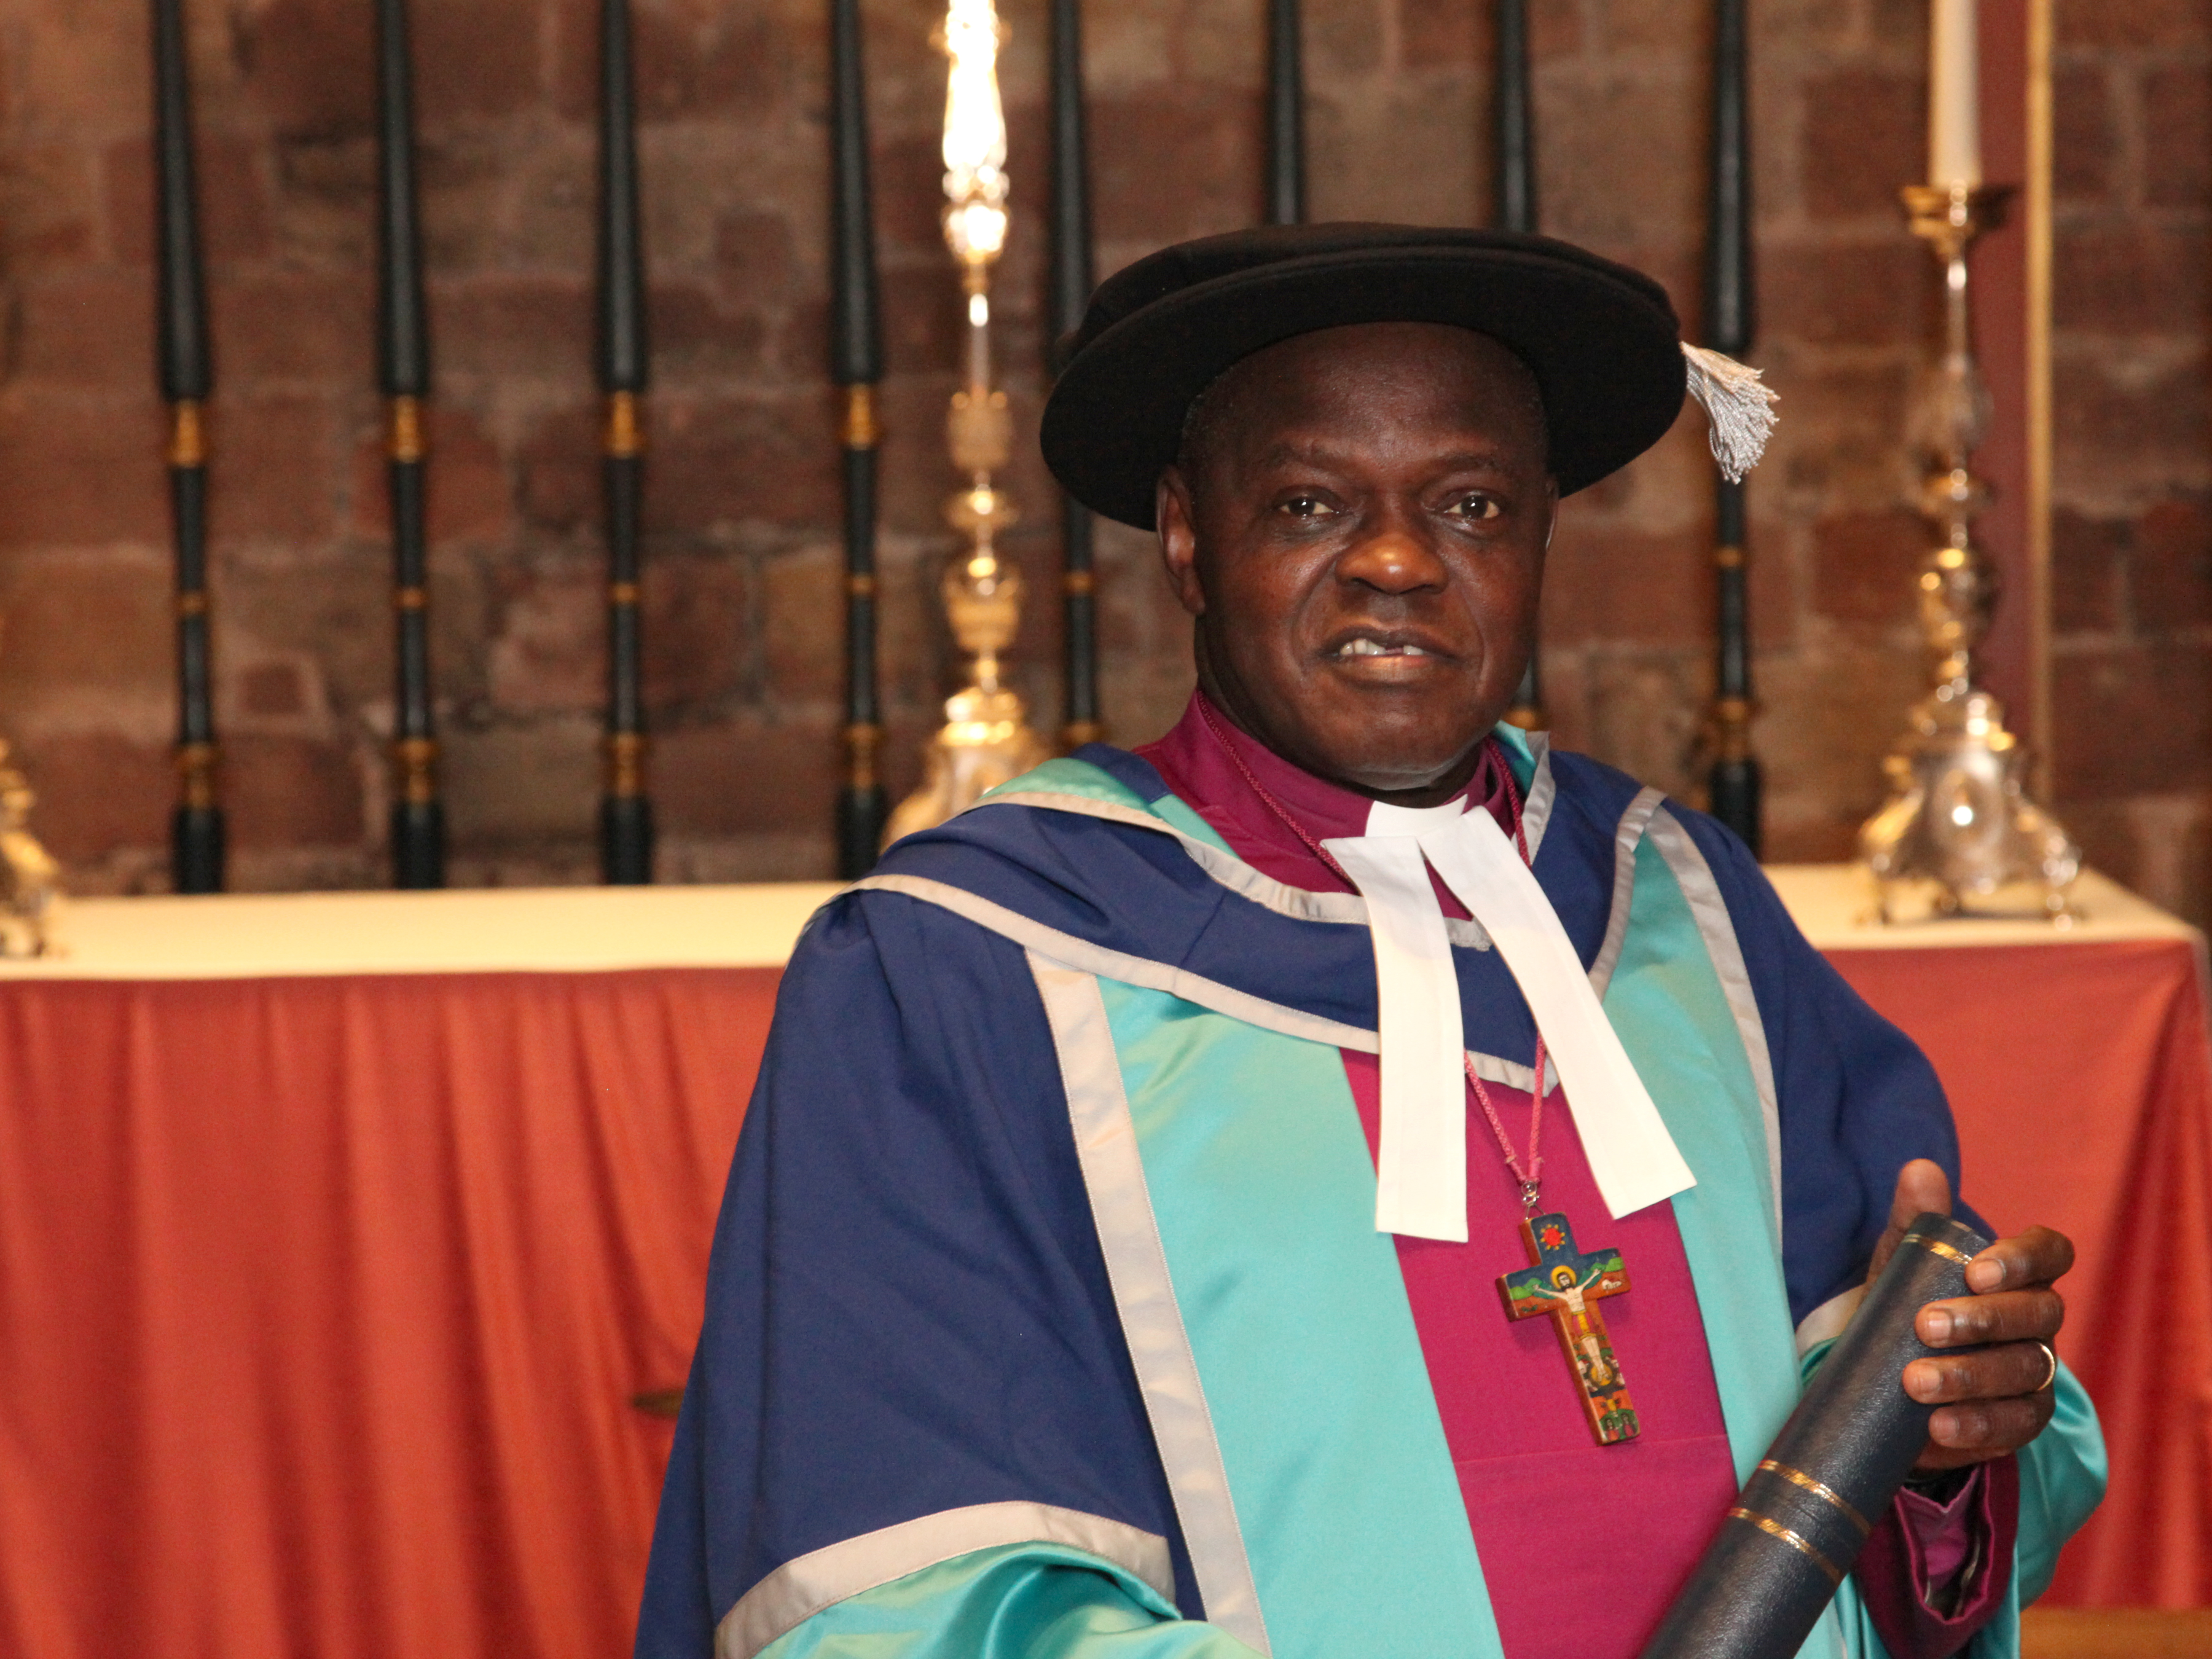 Archbishop of York awarded university's inaugural honorary doctorate